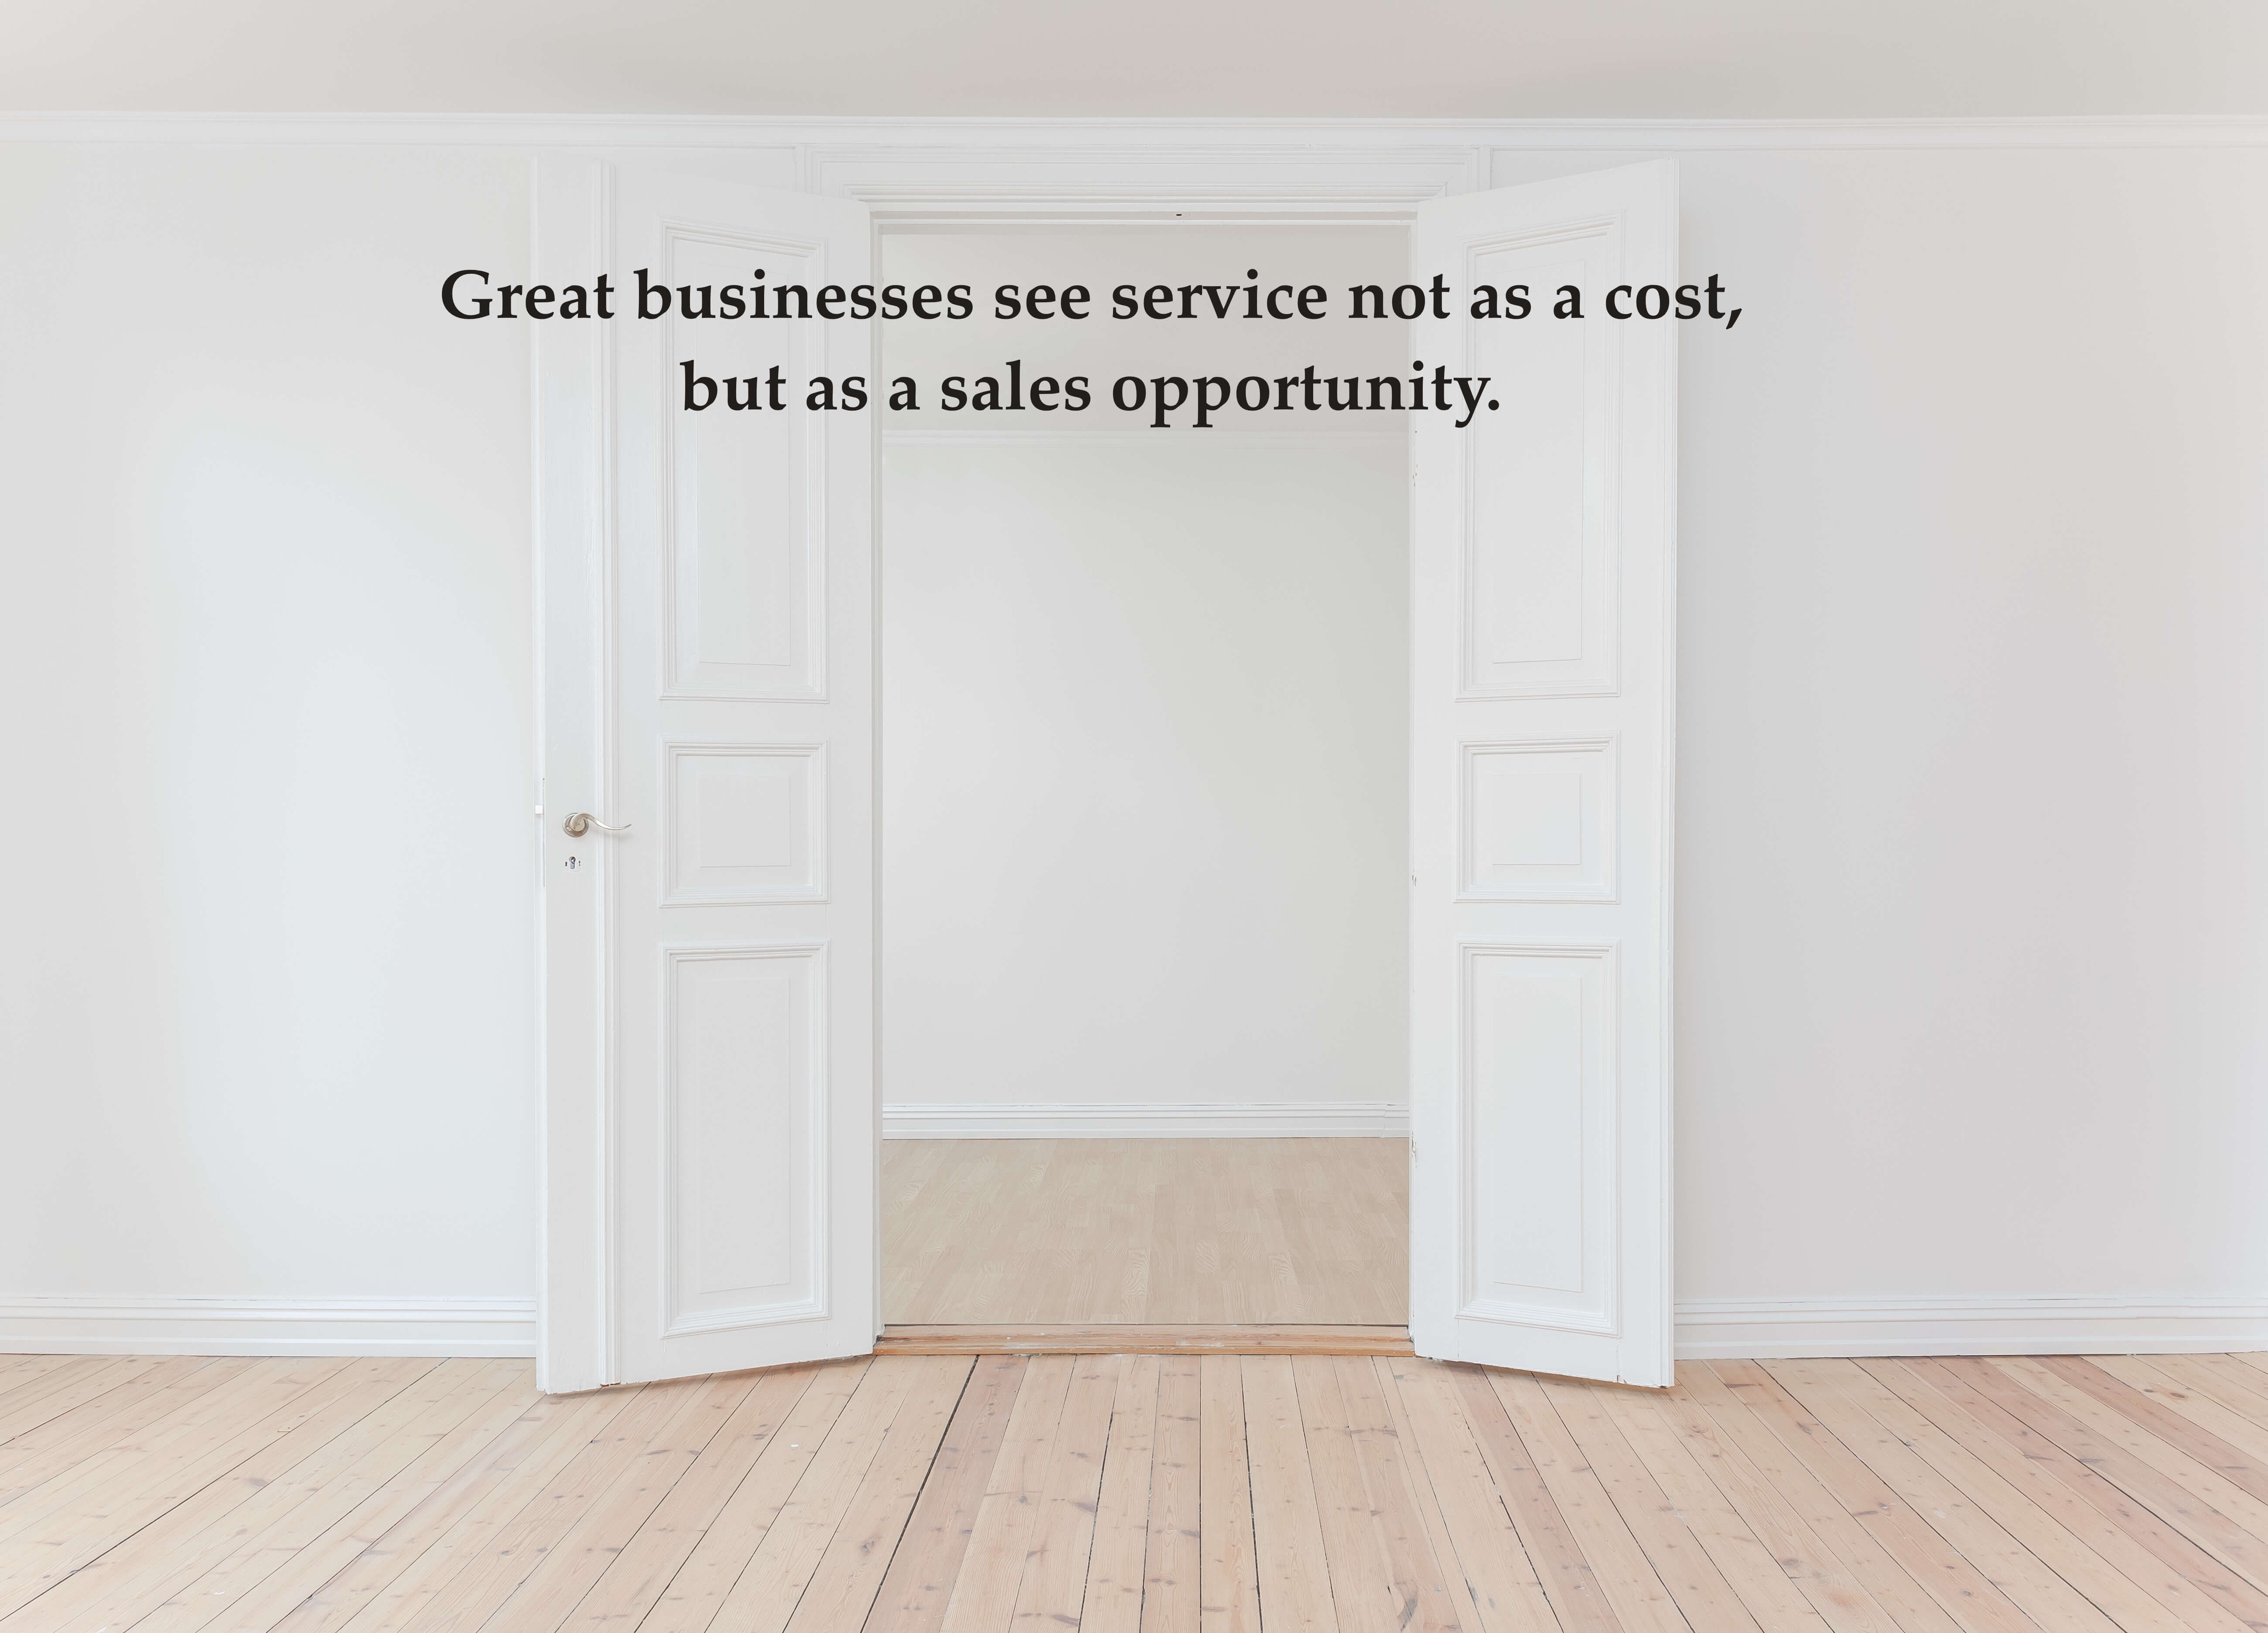 Great businesses see service not as a cost, but as a sales opportunity.